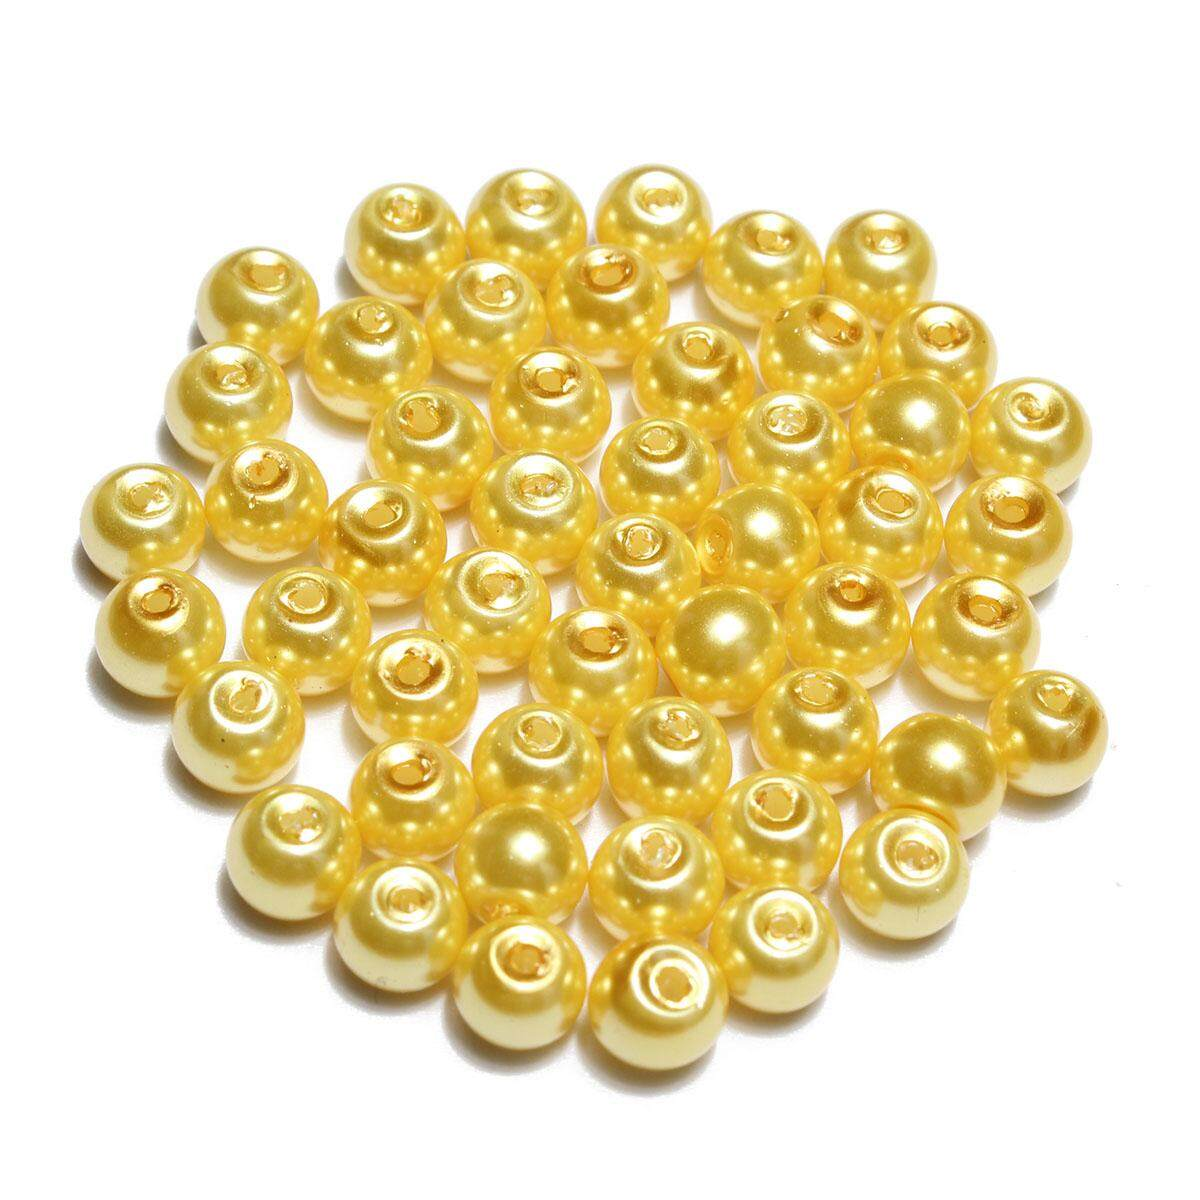 Wholesale Lots Glass Pearl Round Spacer Loose Beads Yellow 4mm 100pc By Moonbeam.